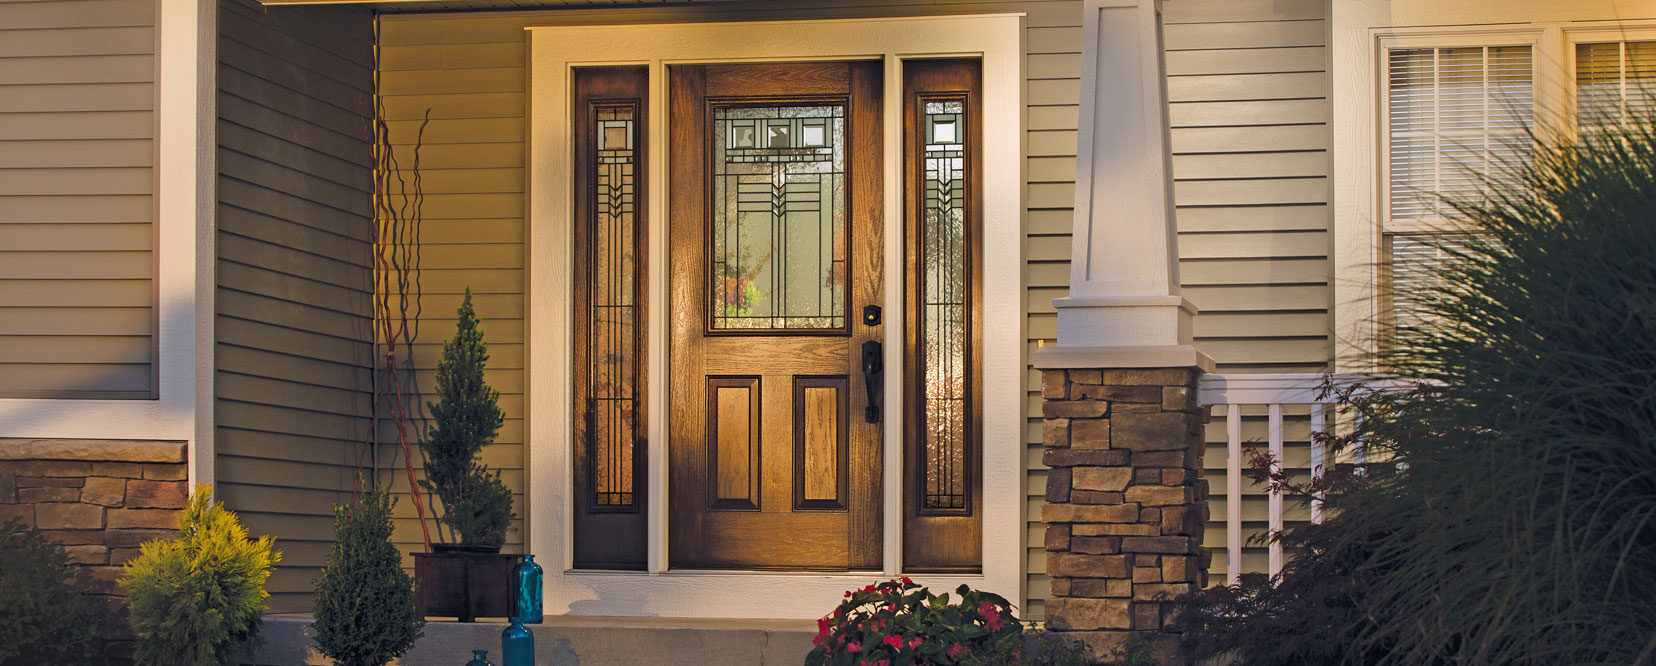 window-source-springfield-missouri-fiberglass-replacement-door.jpg